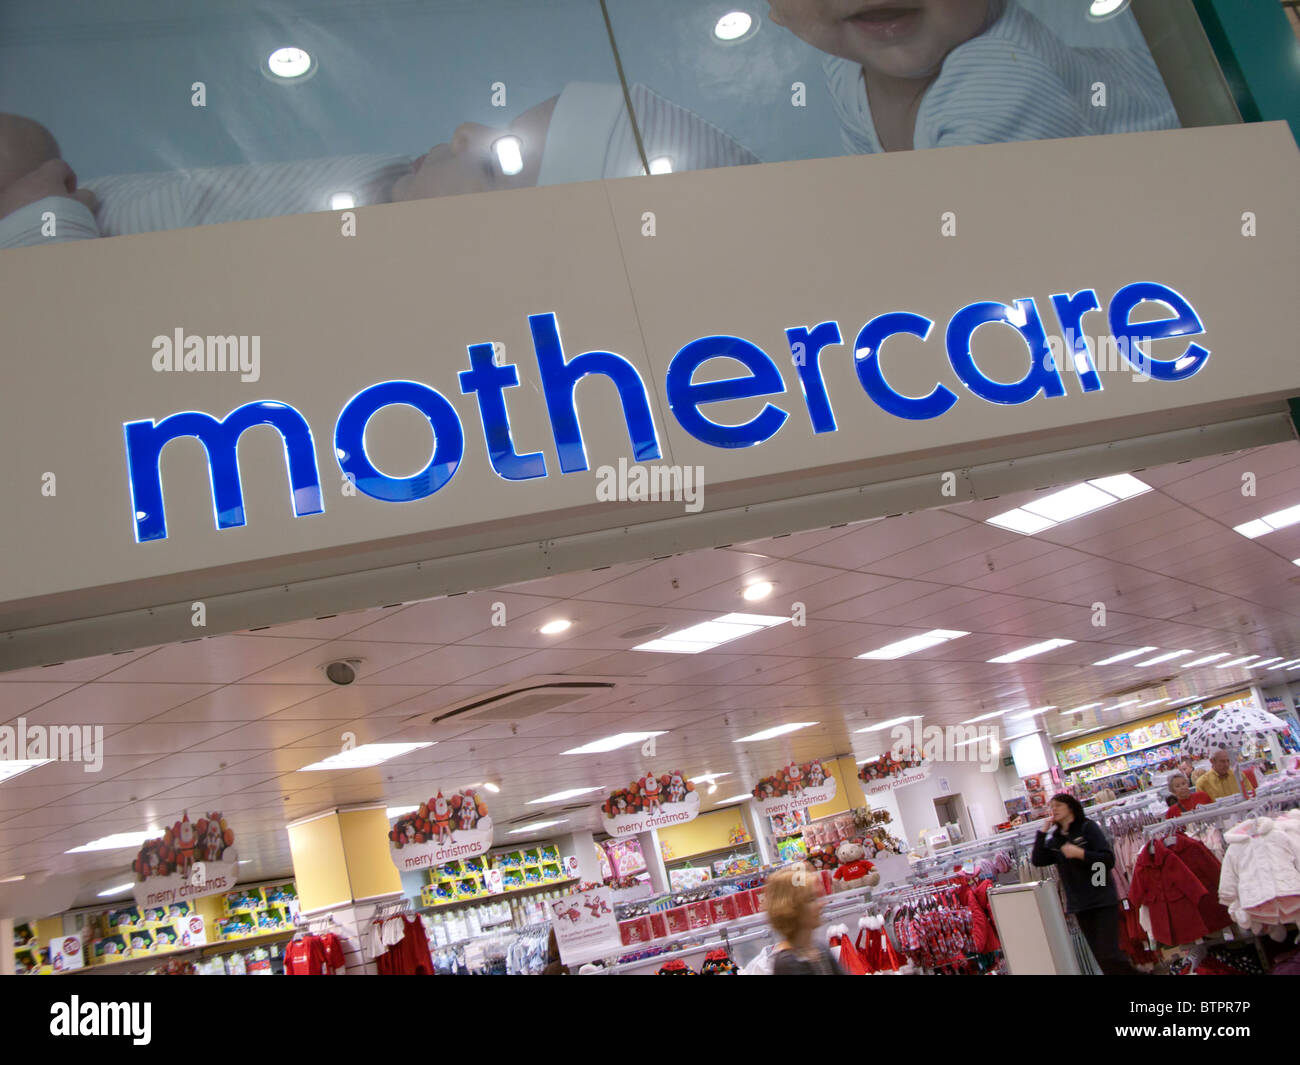 Mothercare shop - Stock Image